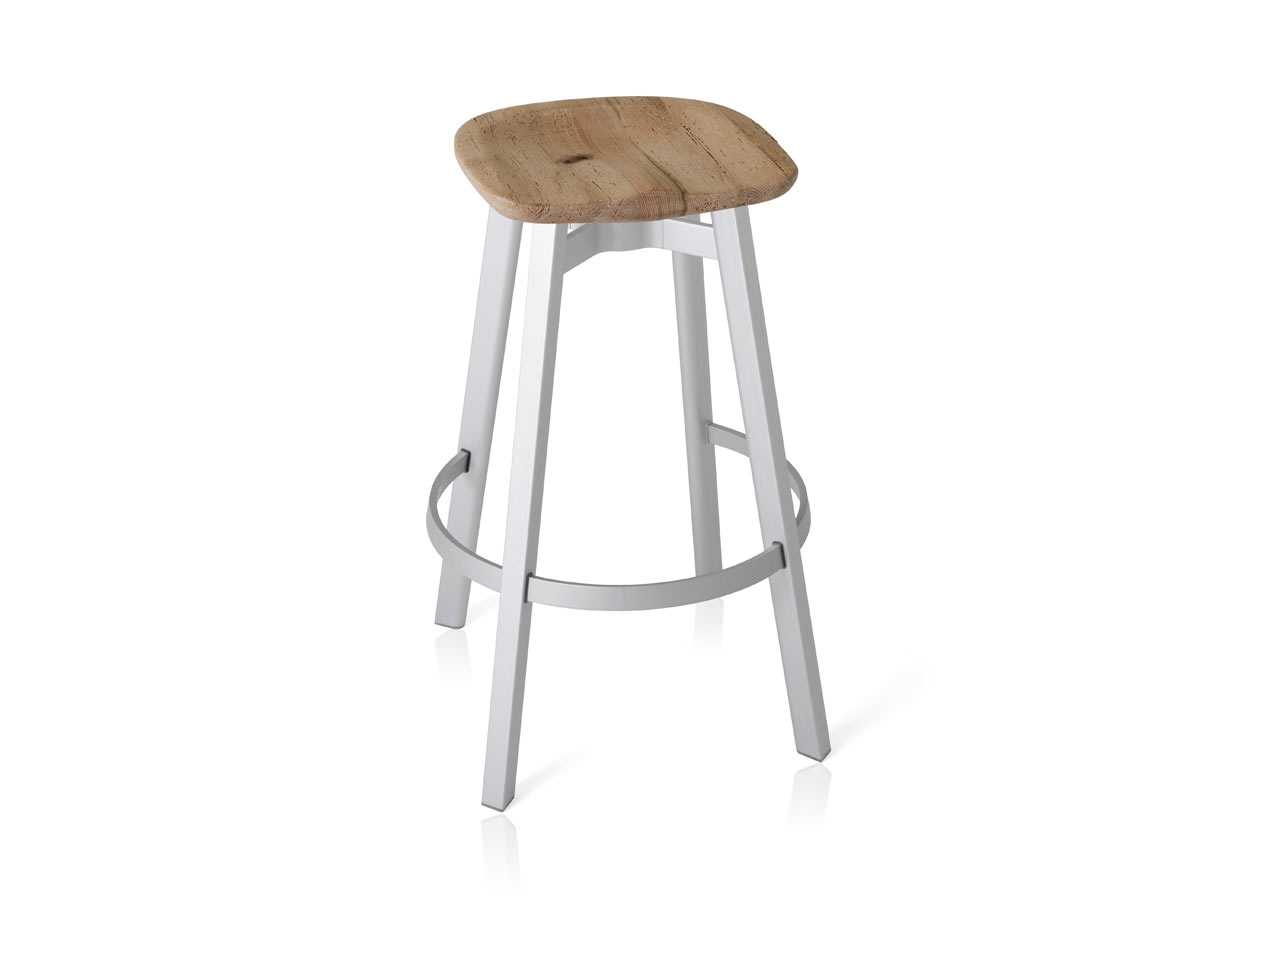 Emeco_SU-Collection-Nendo-Outdoor-Table-Stool-9